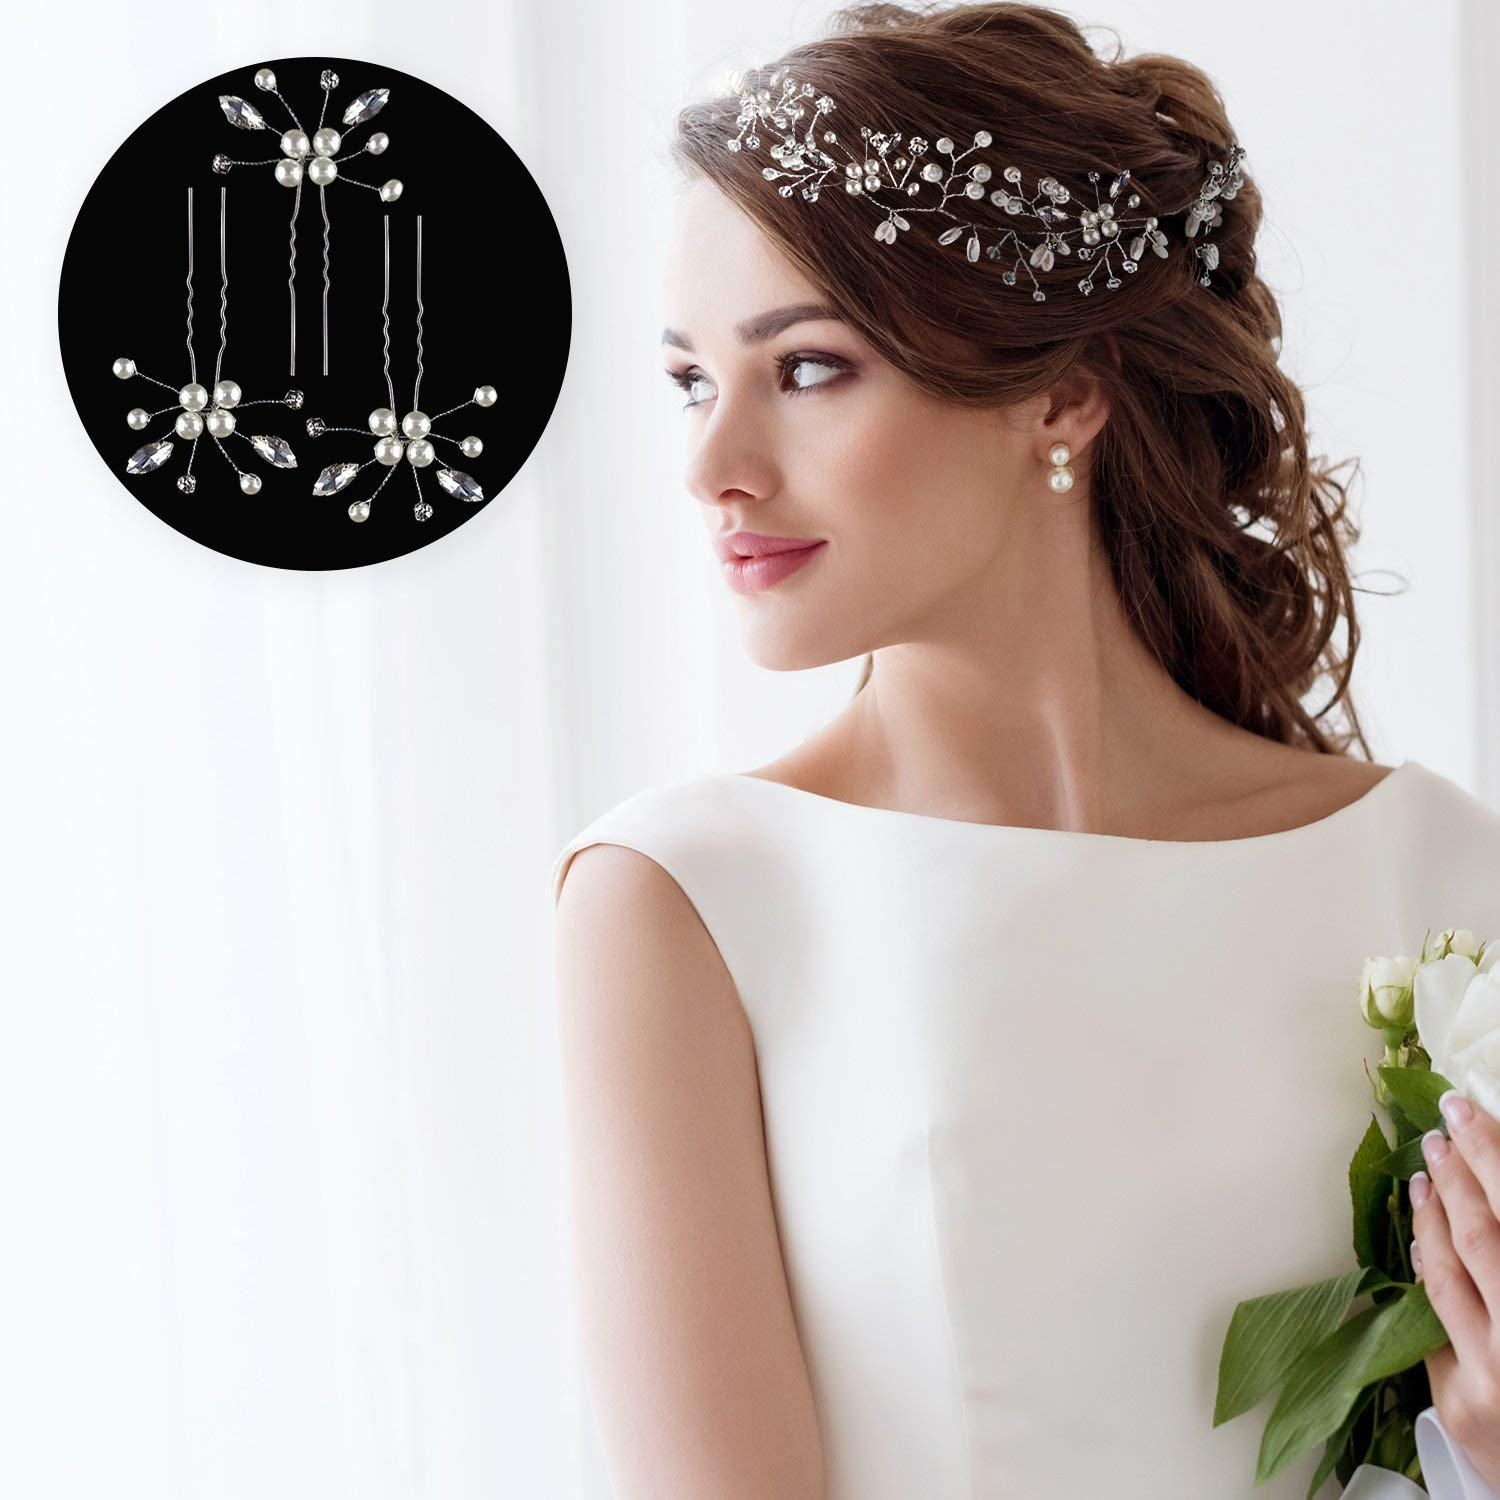 Get Quotations · HANDMADE HAIR ACCESSORIES FOR WEDDING + 3 BONUS FLOWER  WEDDING HAIR PINS - WEDDING HAIR ACCESSORIES 6608246c26b0